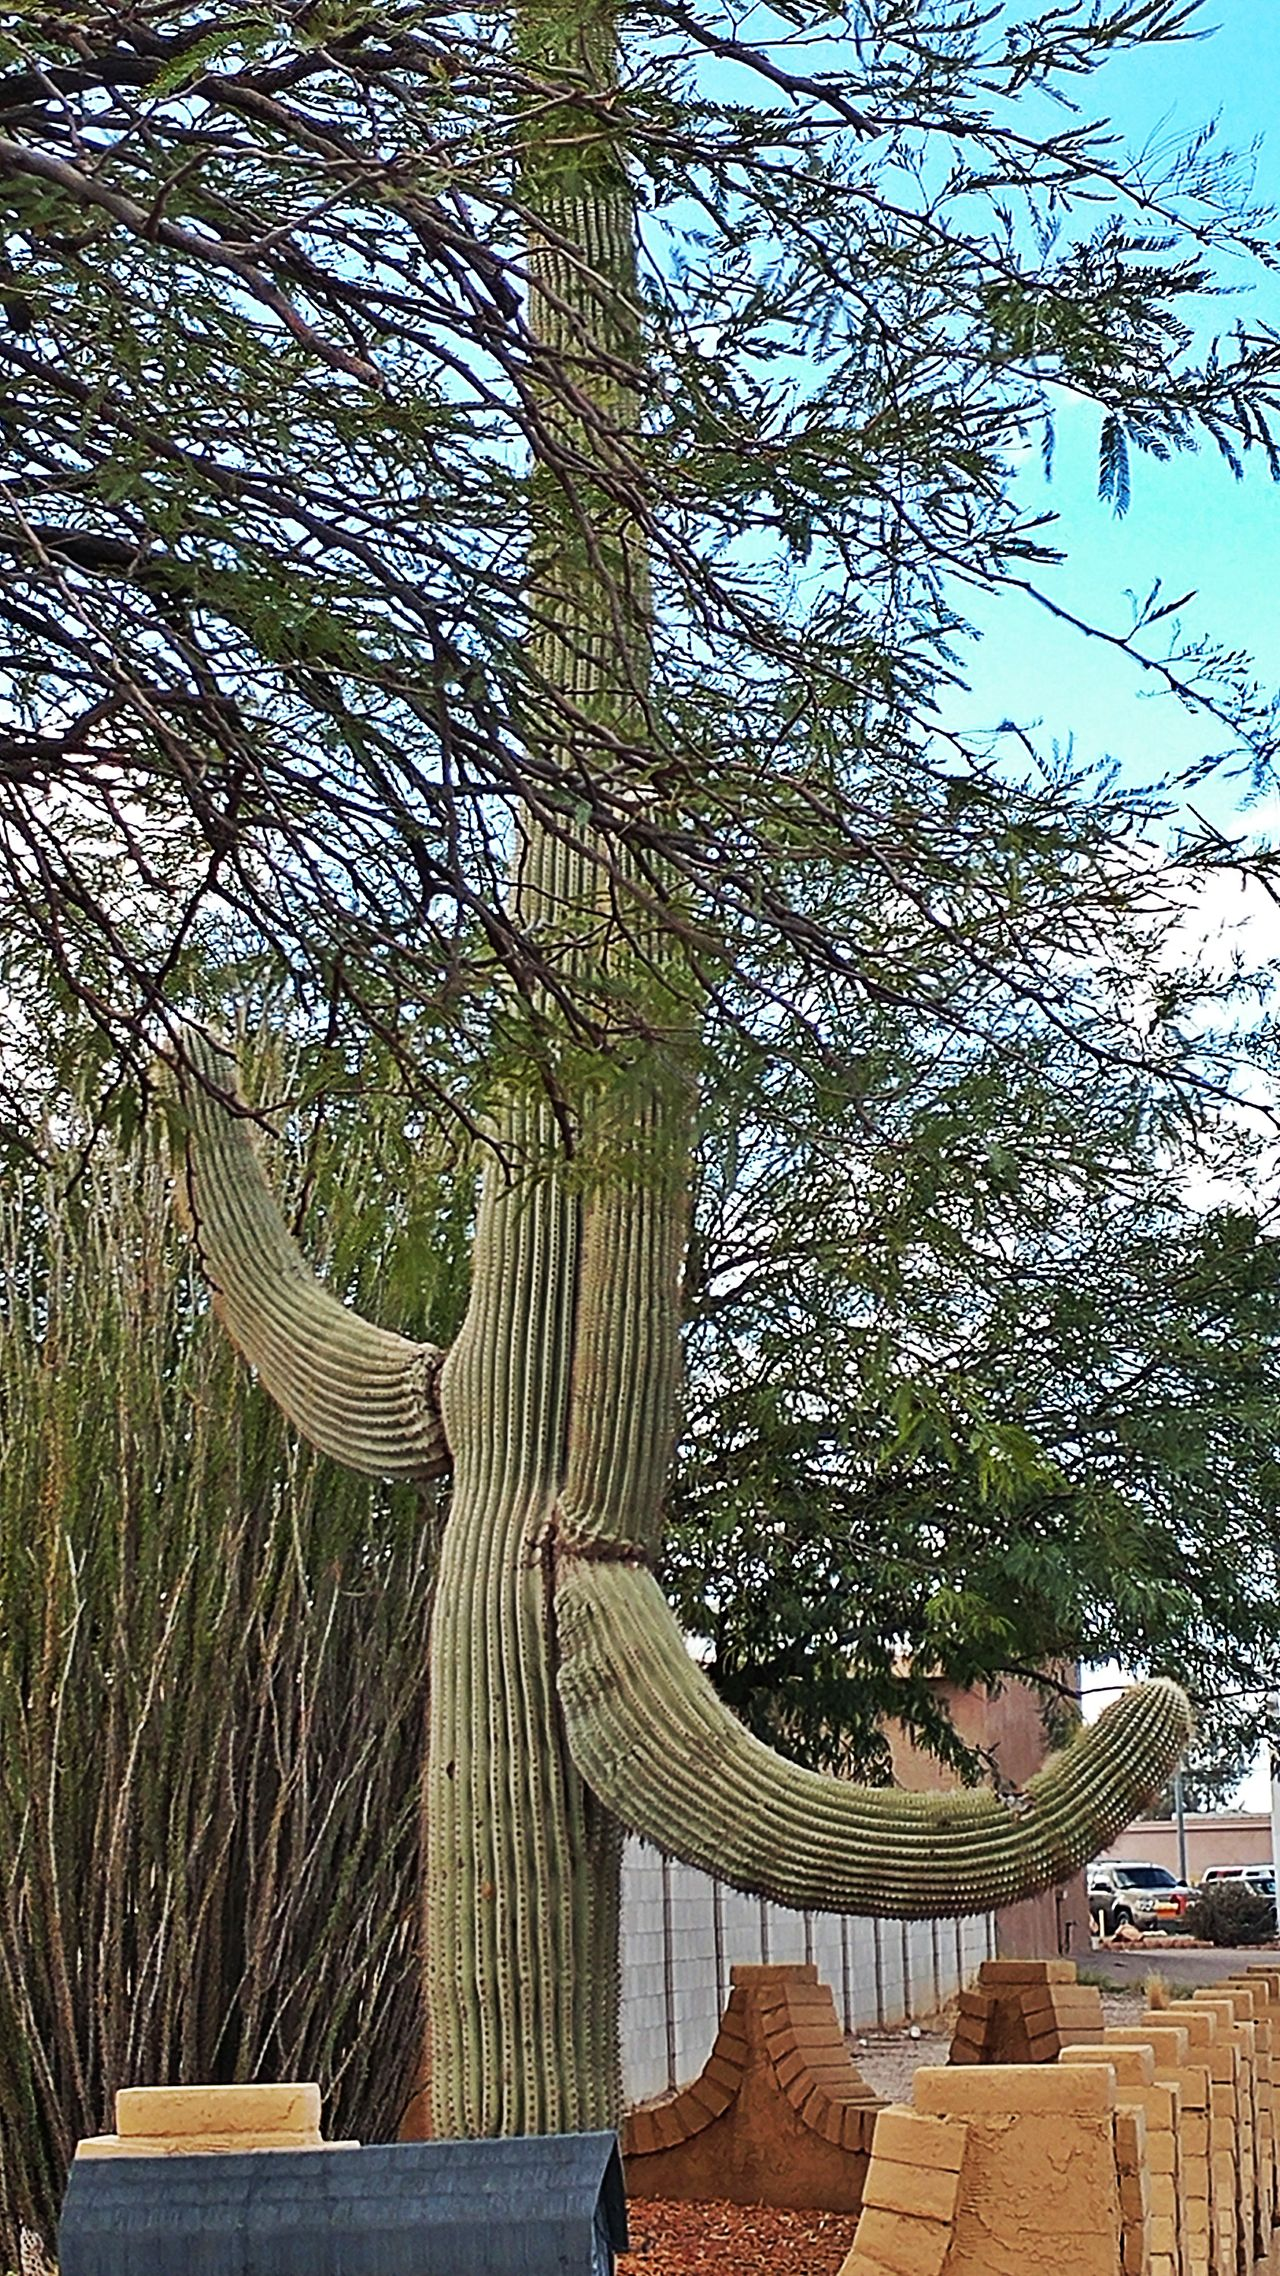 cactus Tree Nature Growth No People Day Beauty In Nature Outdoors Sky Tranquility Scenics EyeEm Gallery EyeEm Best Shots Check This Out Casa Grande Az